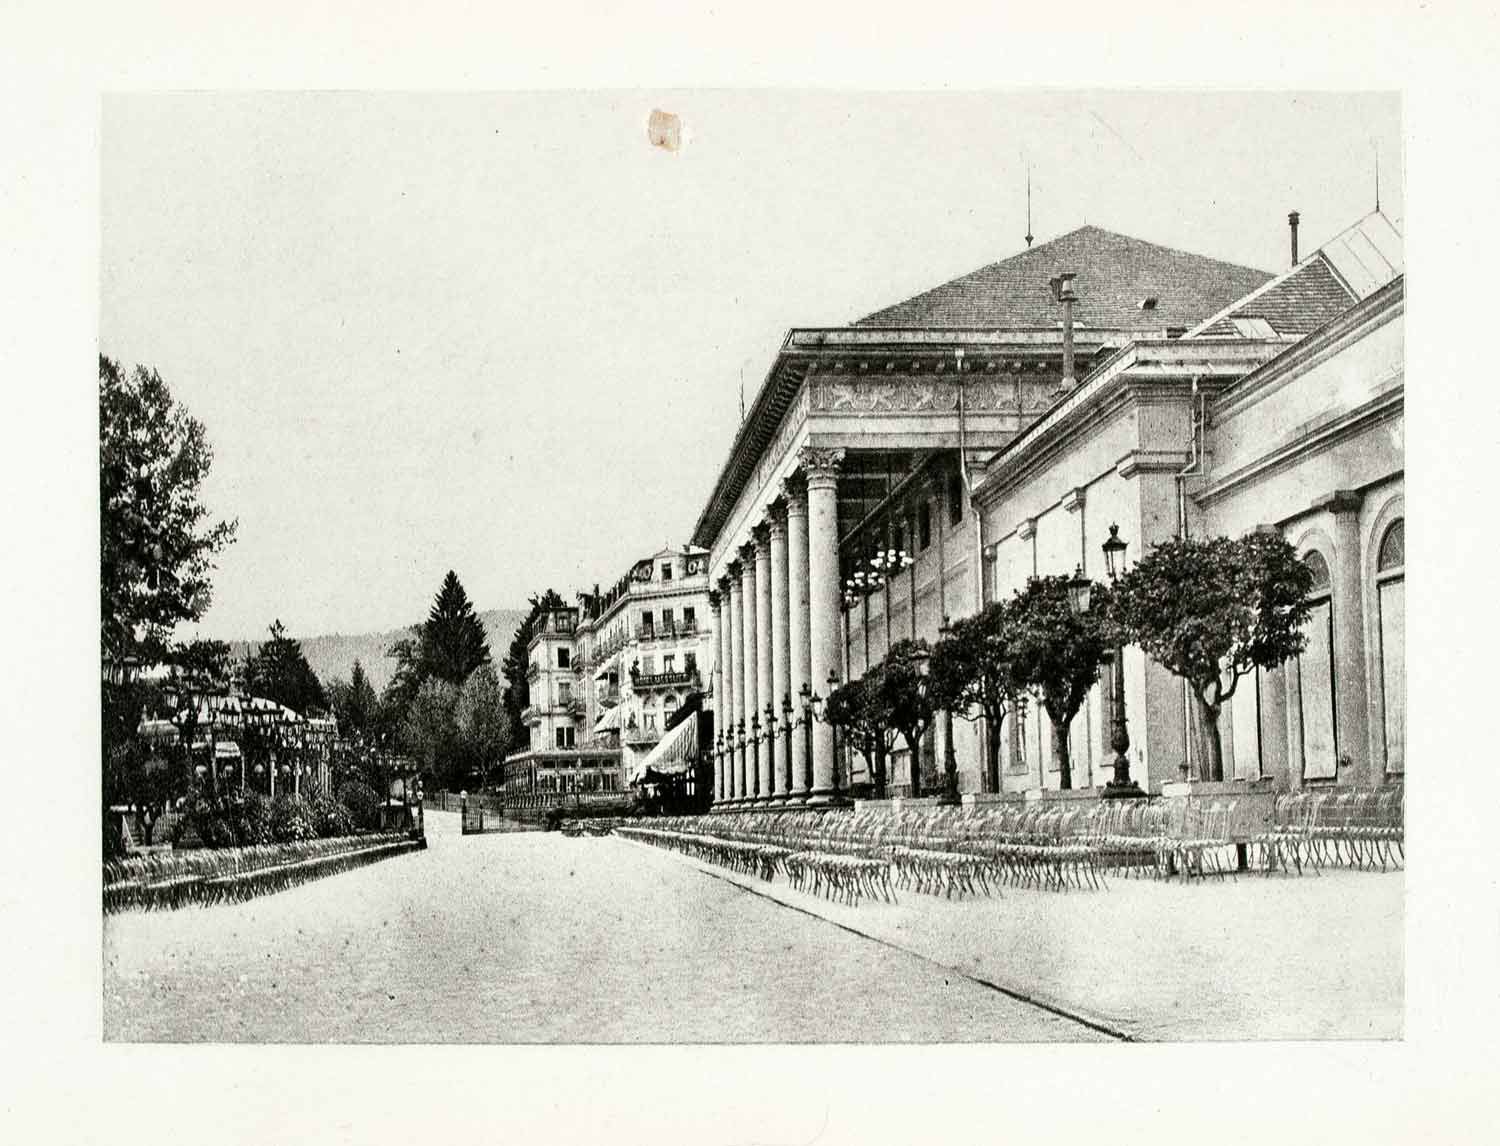 1899 Photogravure Baden Germany Conversation House Building Historic Image XGYA5